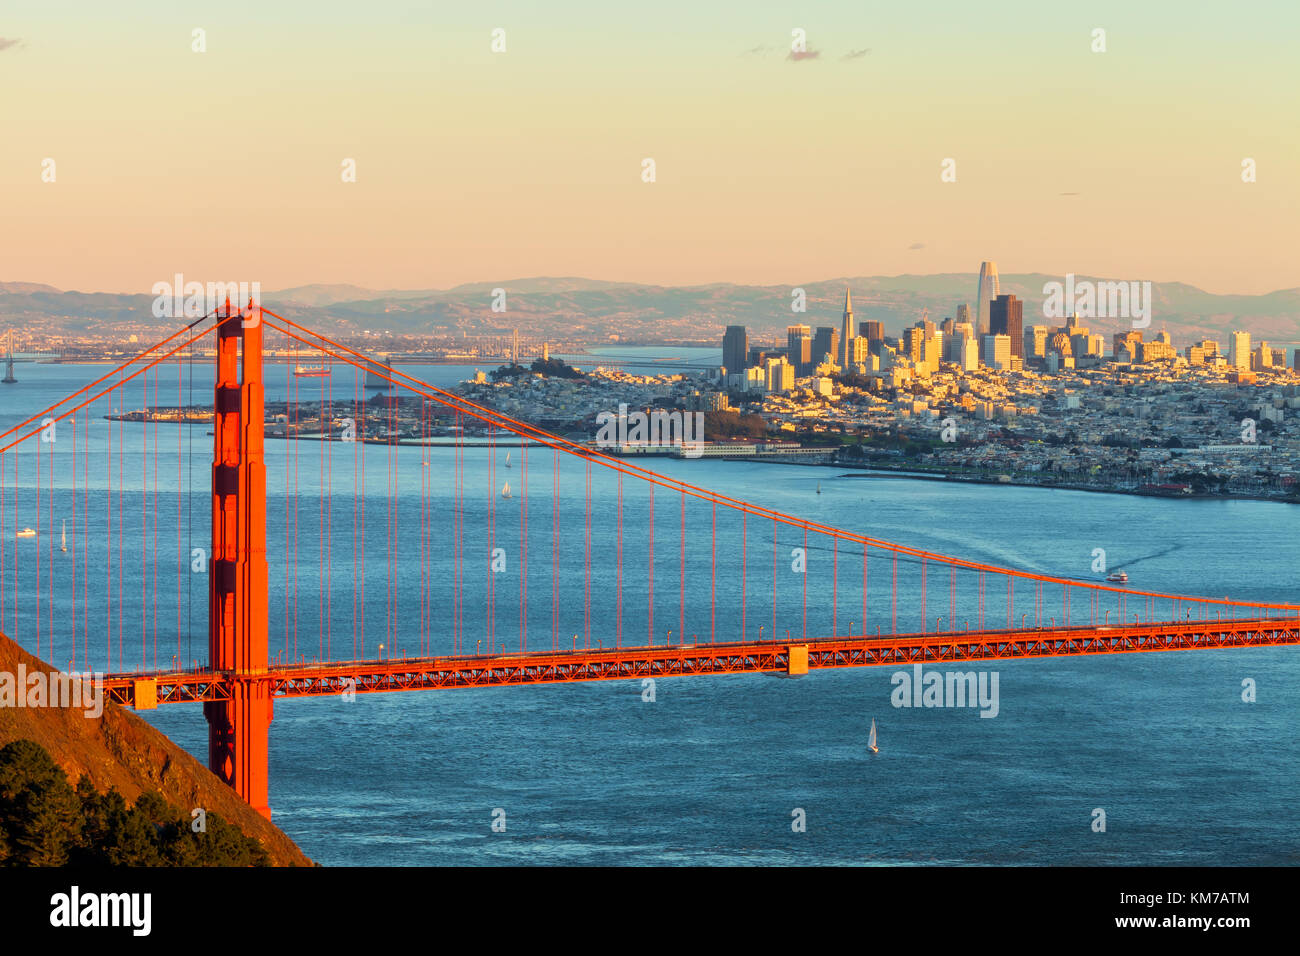 Golden Gate Bridge, with the San Francisco City lighting up by evening sunlight in the background, California, United - Stock Image